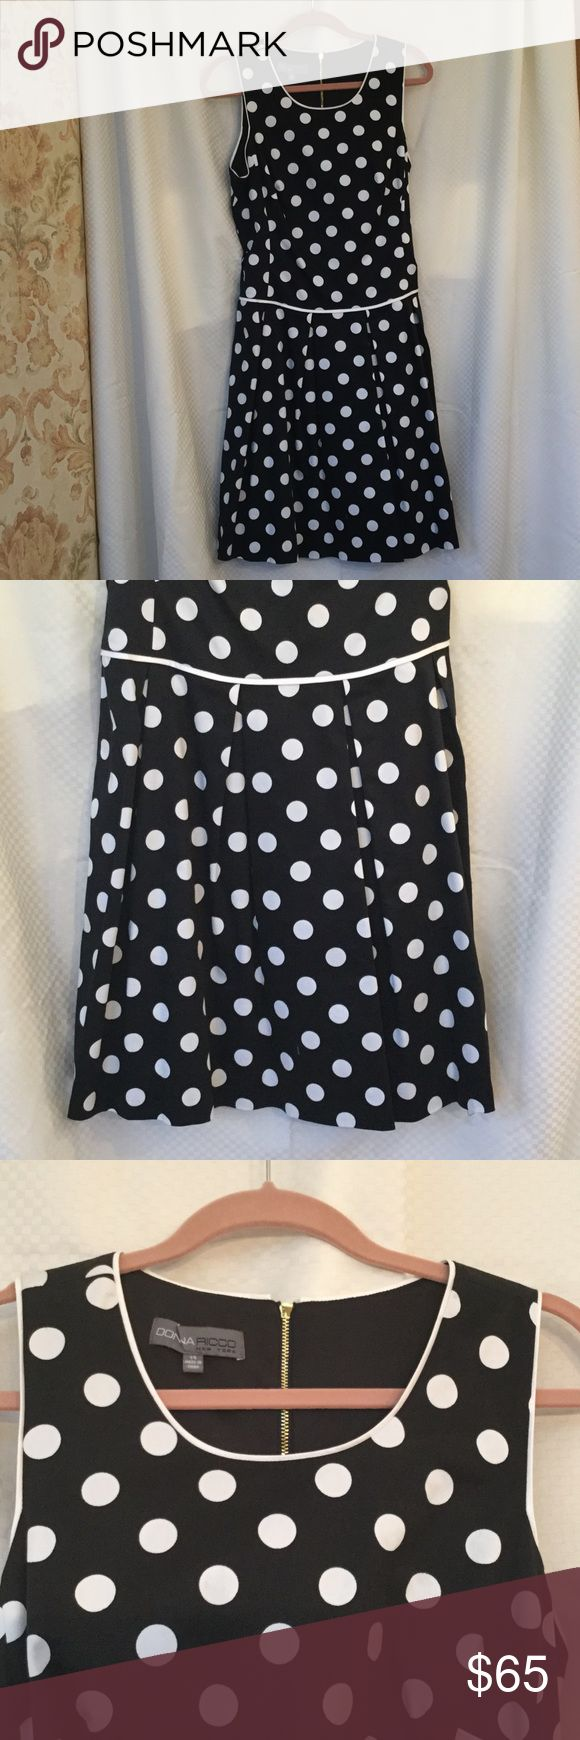 Polka dot dress with pleated bottom Polka Dots and side pockets !! Love pockets !! Cute white piping accents with drop waste for a flattering waste line. Has stretch too !! Bought at a dress altering shop, size says 14 but fits like 8 never picked up by original customer. NNT. Donna Ricco Dresses Midi